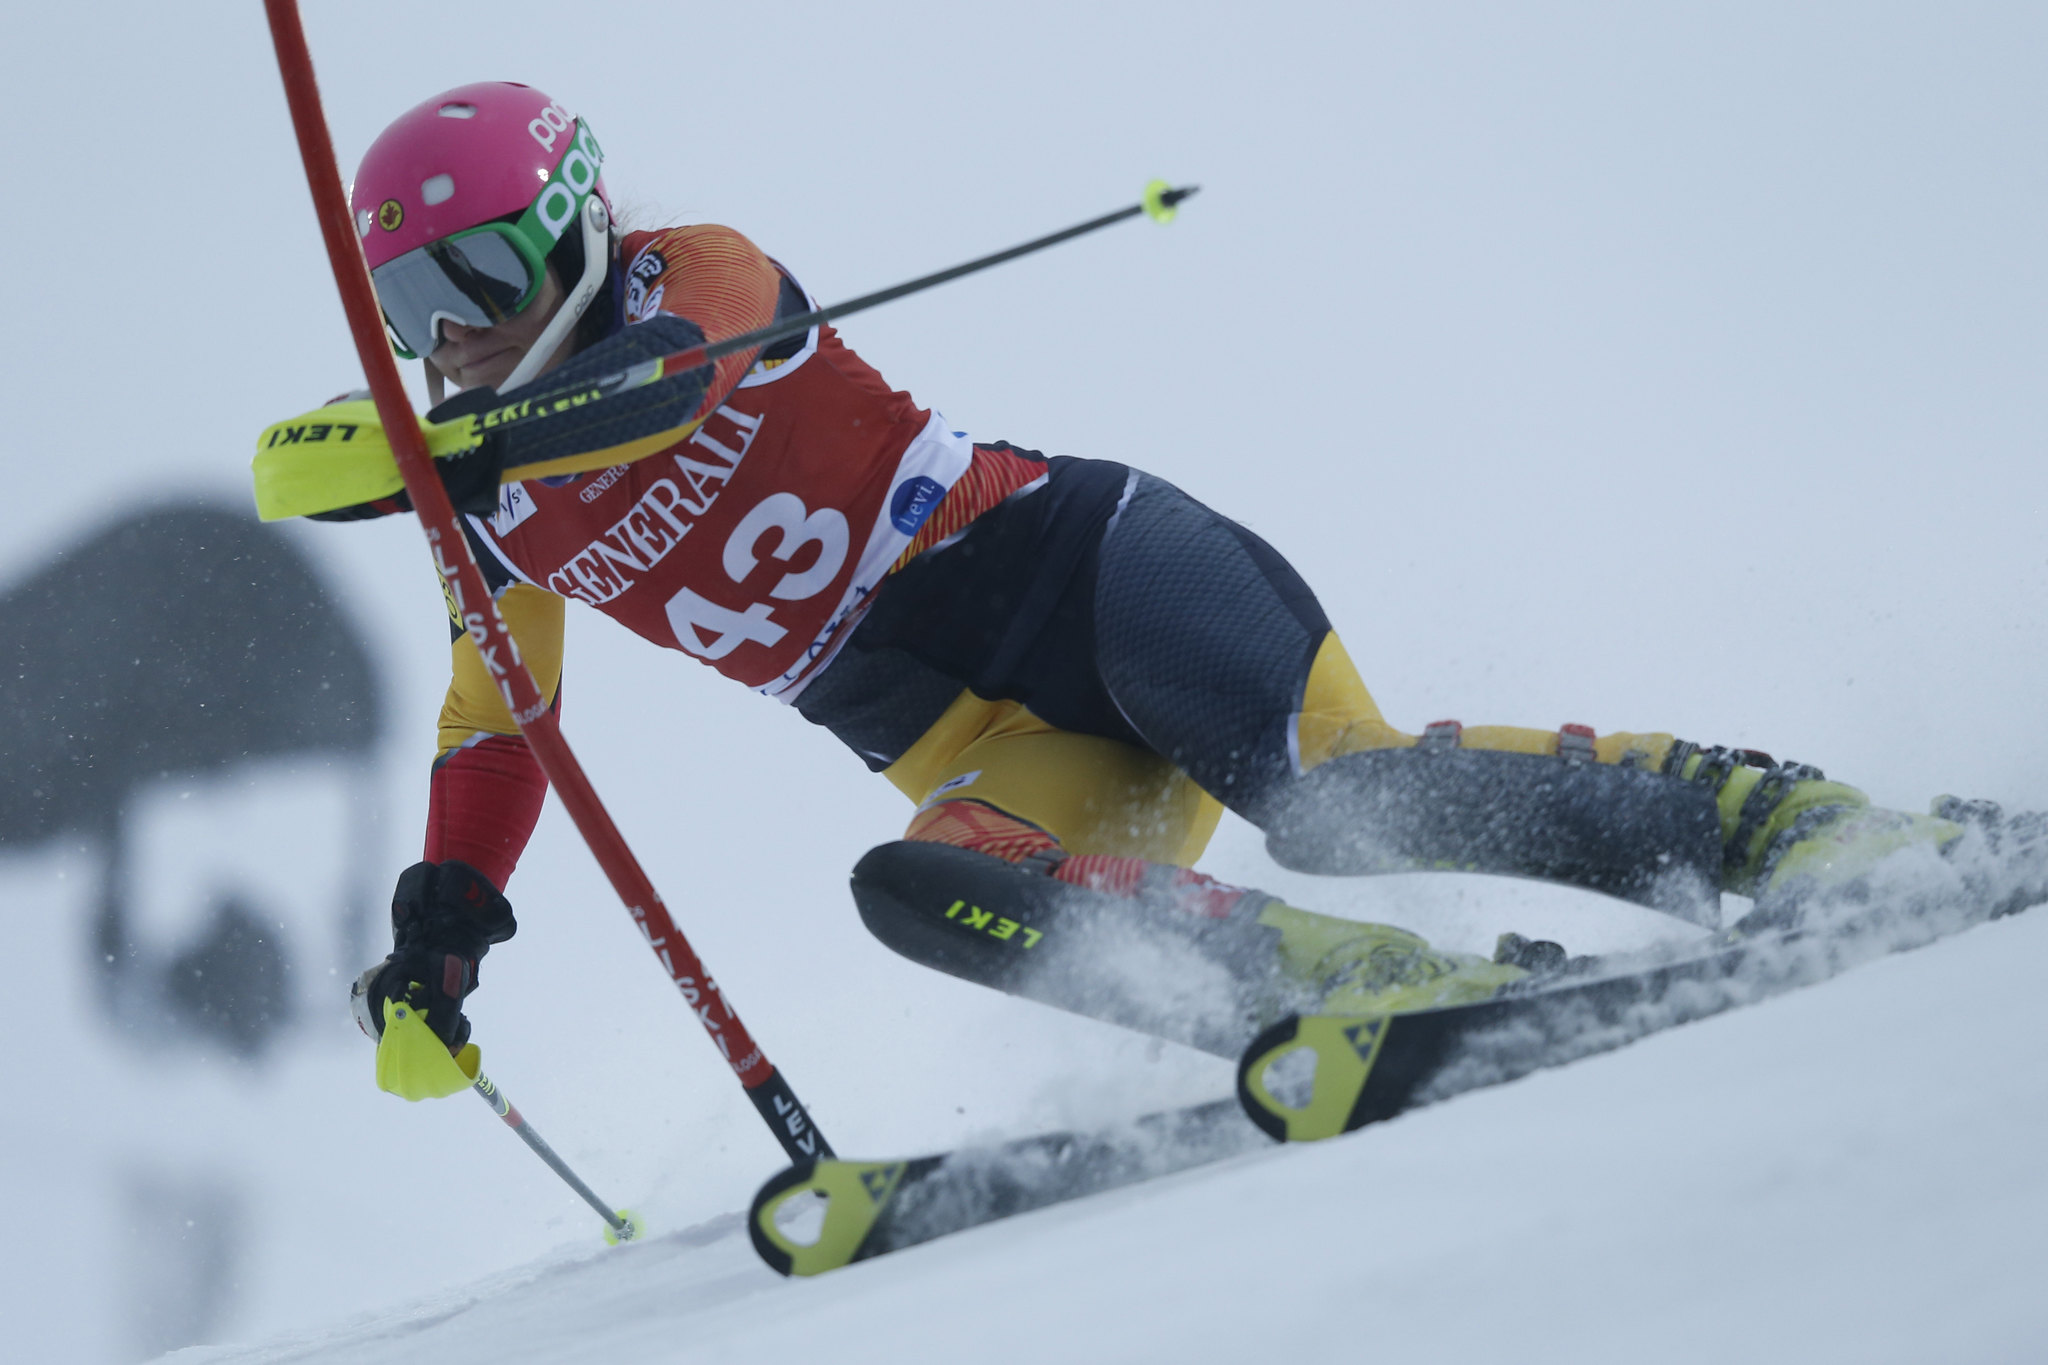 Elli Terwiel during the Levi World Cup slalom.